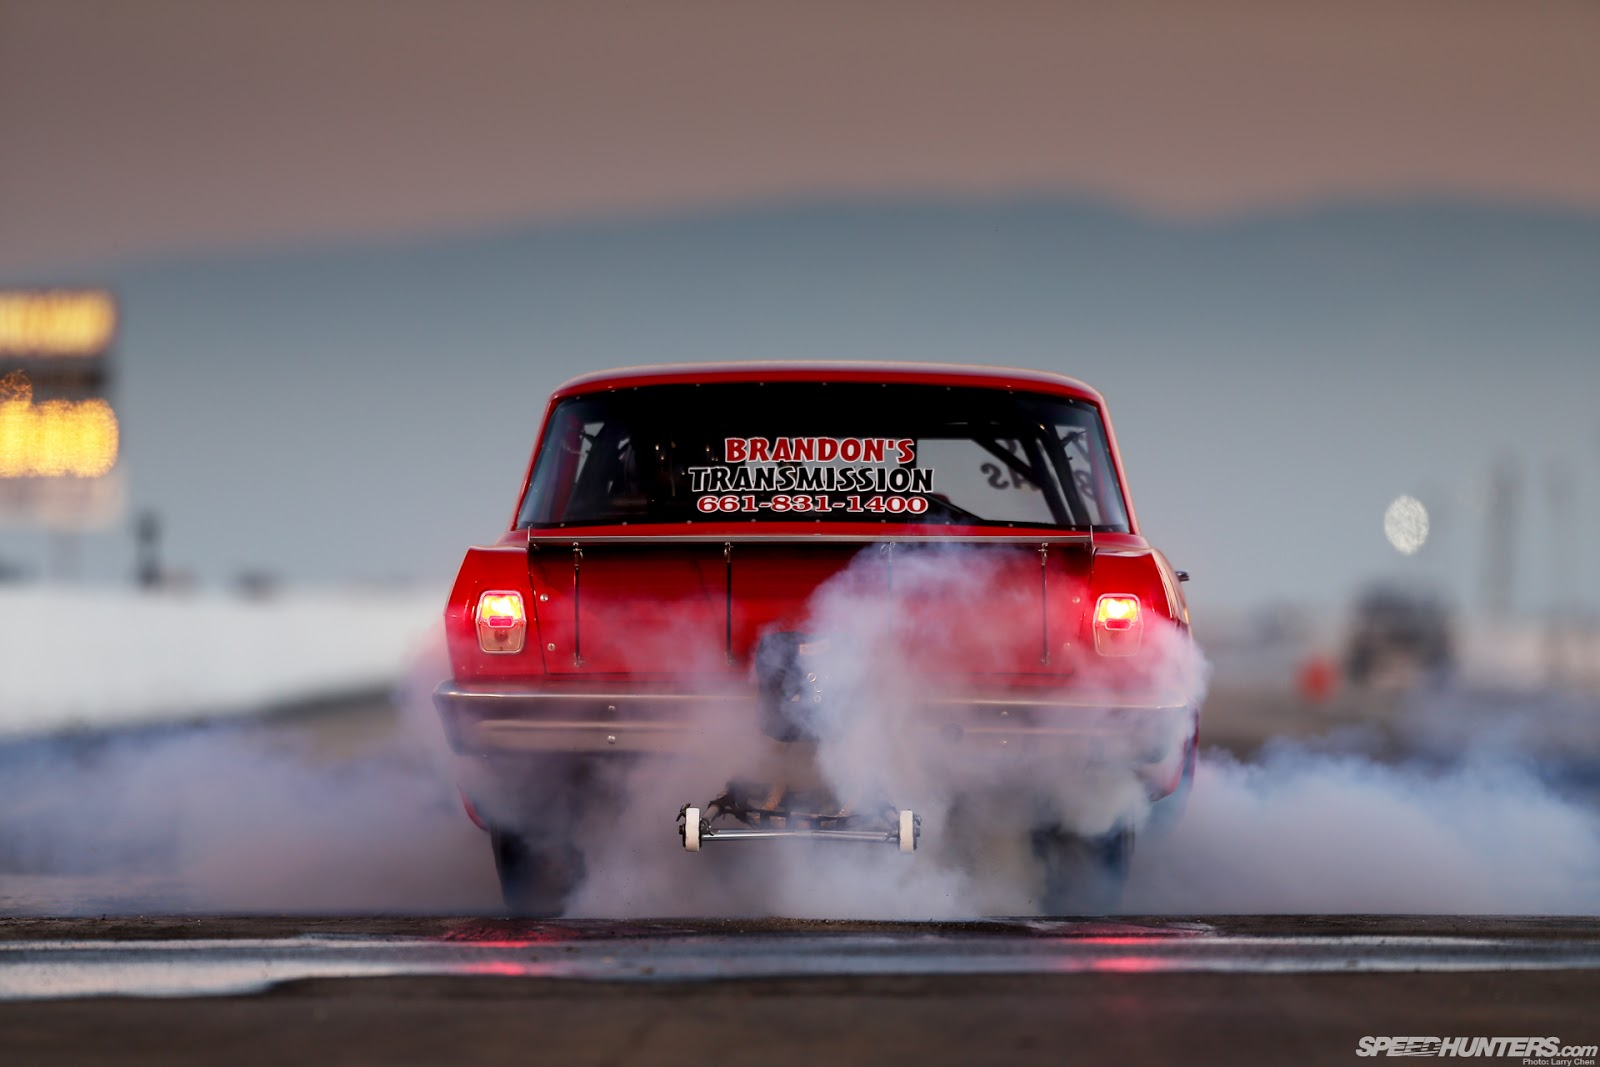 Best Car Drifting Wallpapers New Cb Edit Background S R Editing Zone